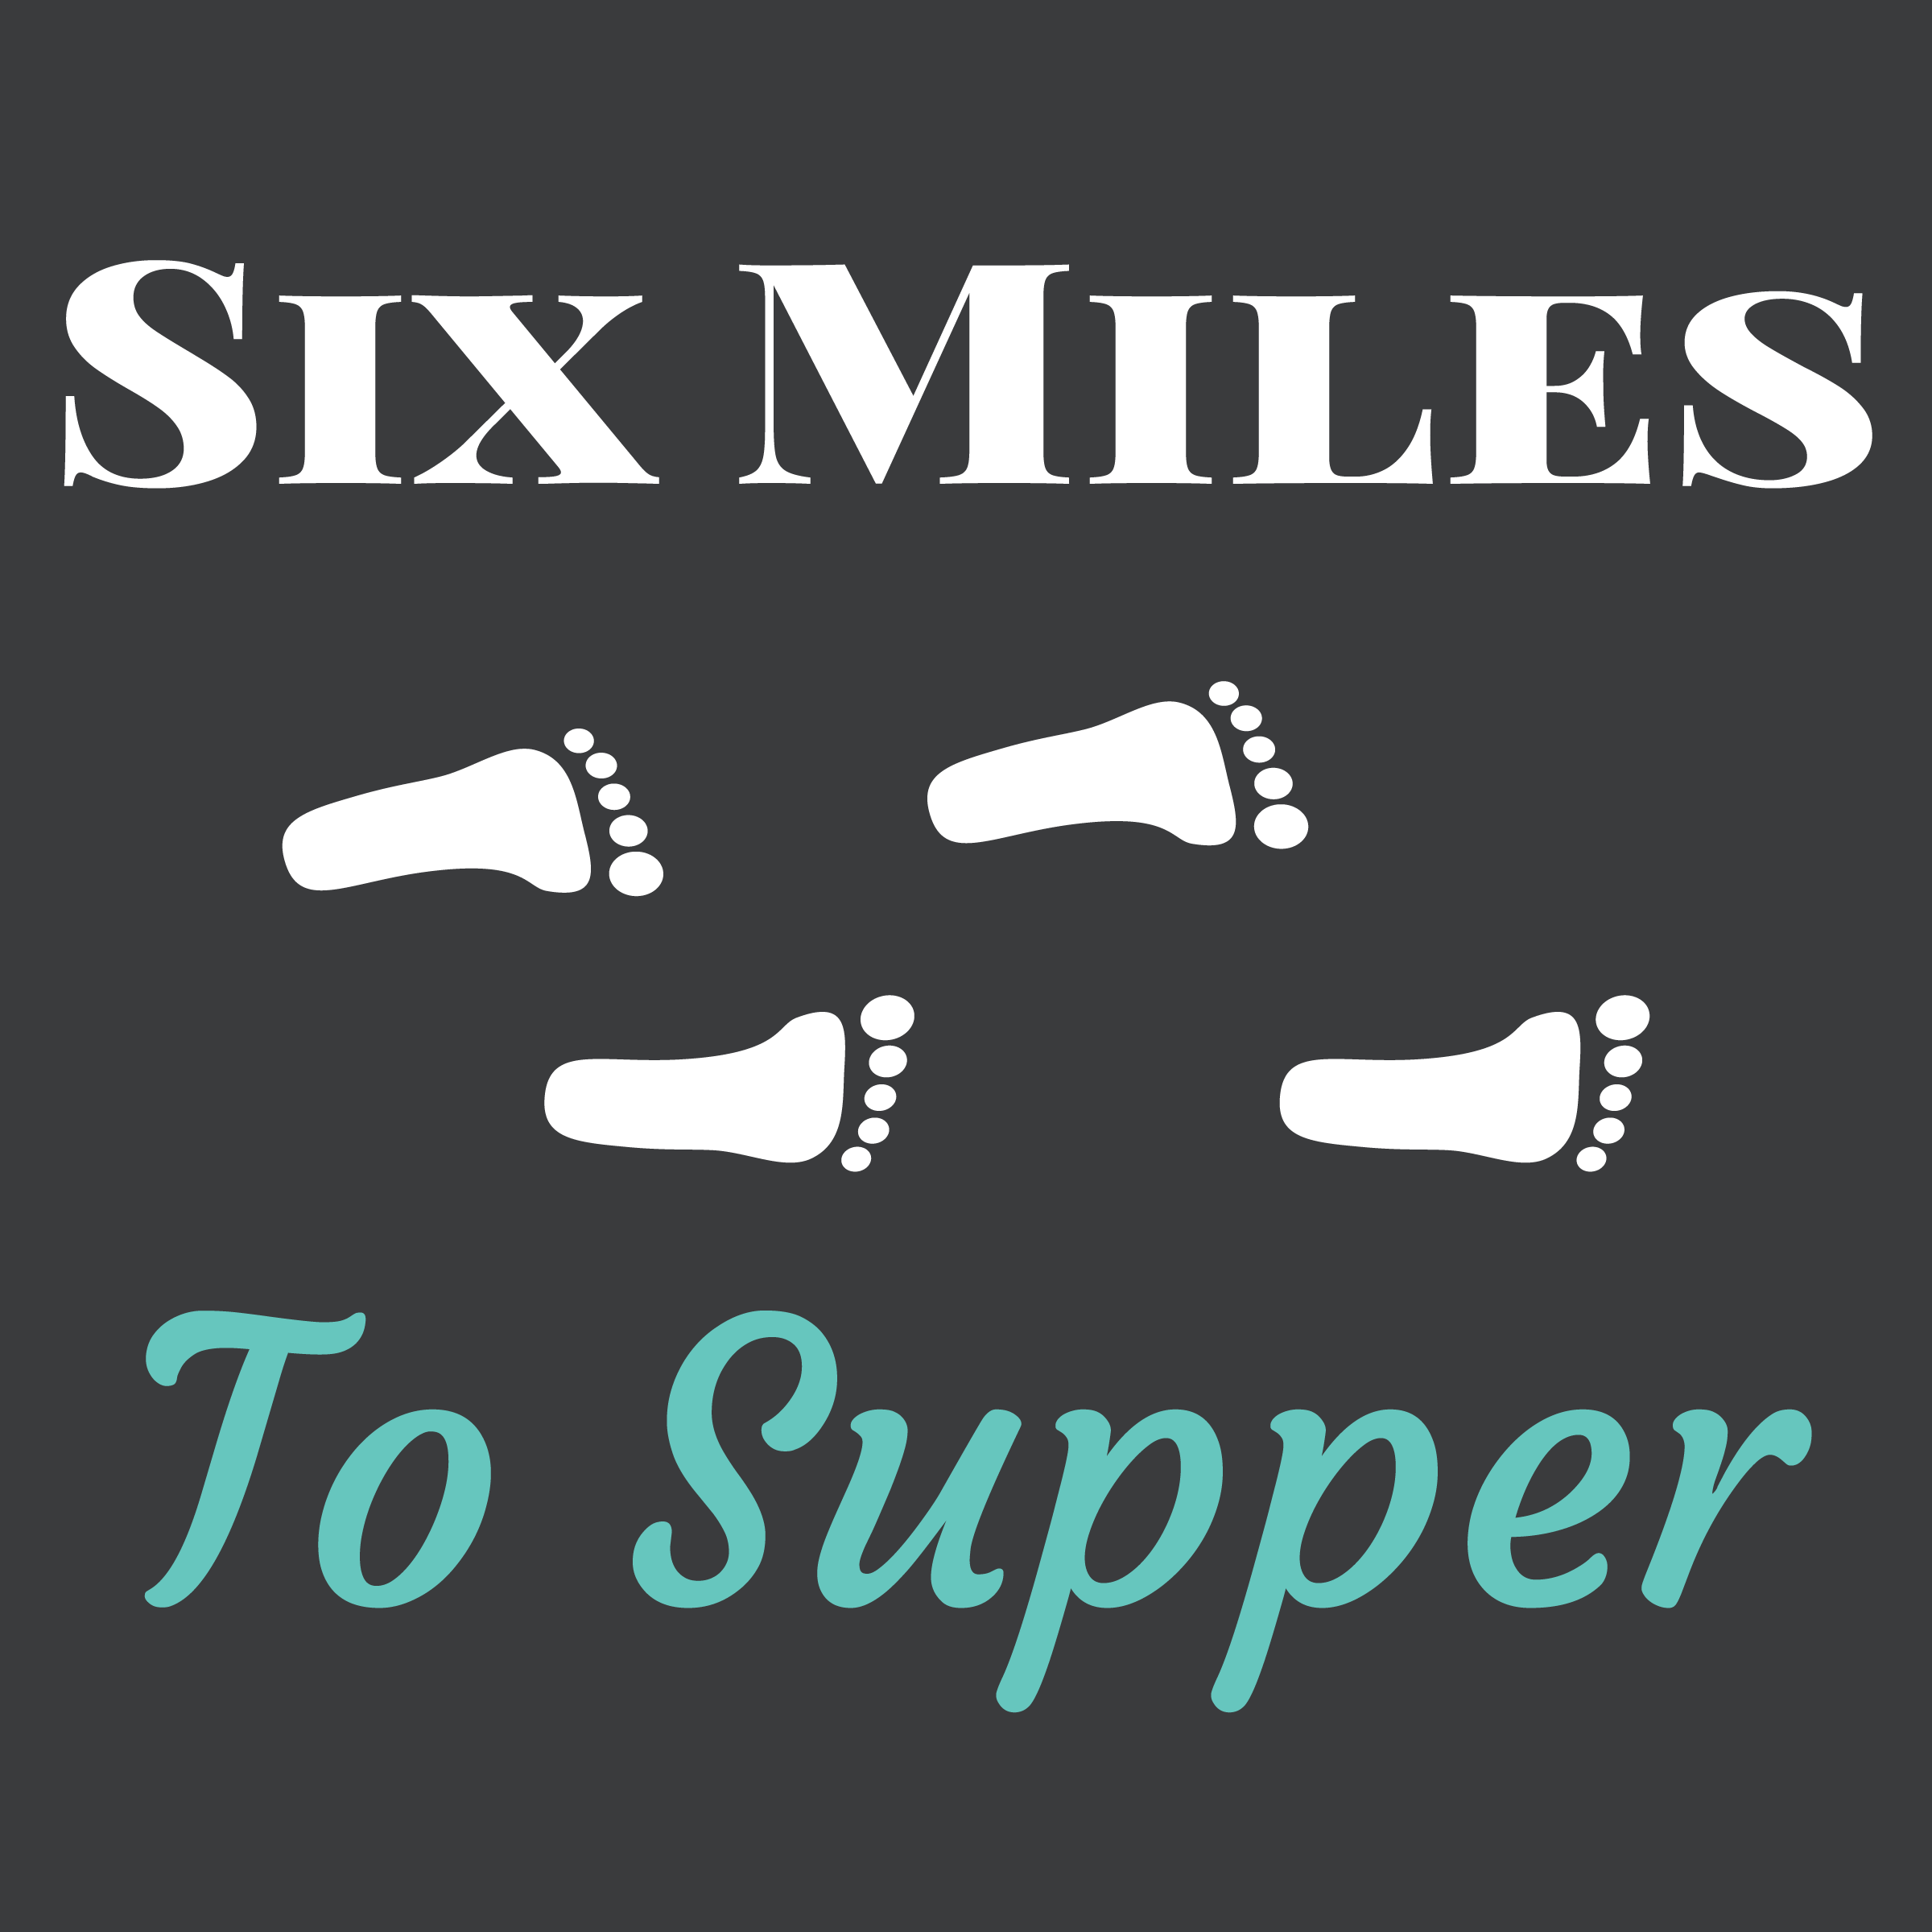 Six Miles To Supper